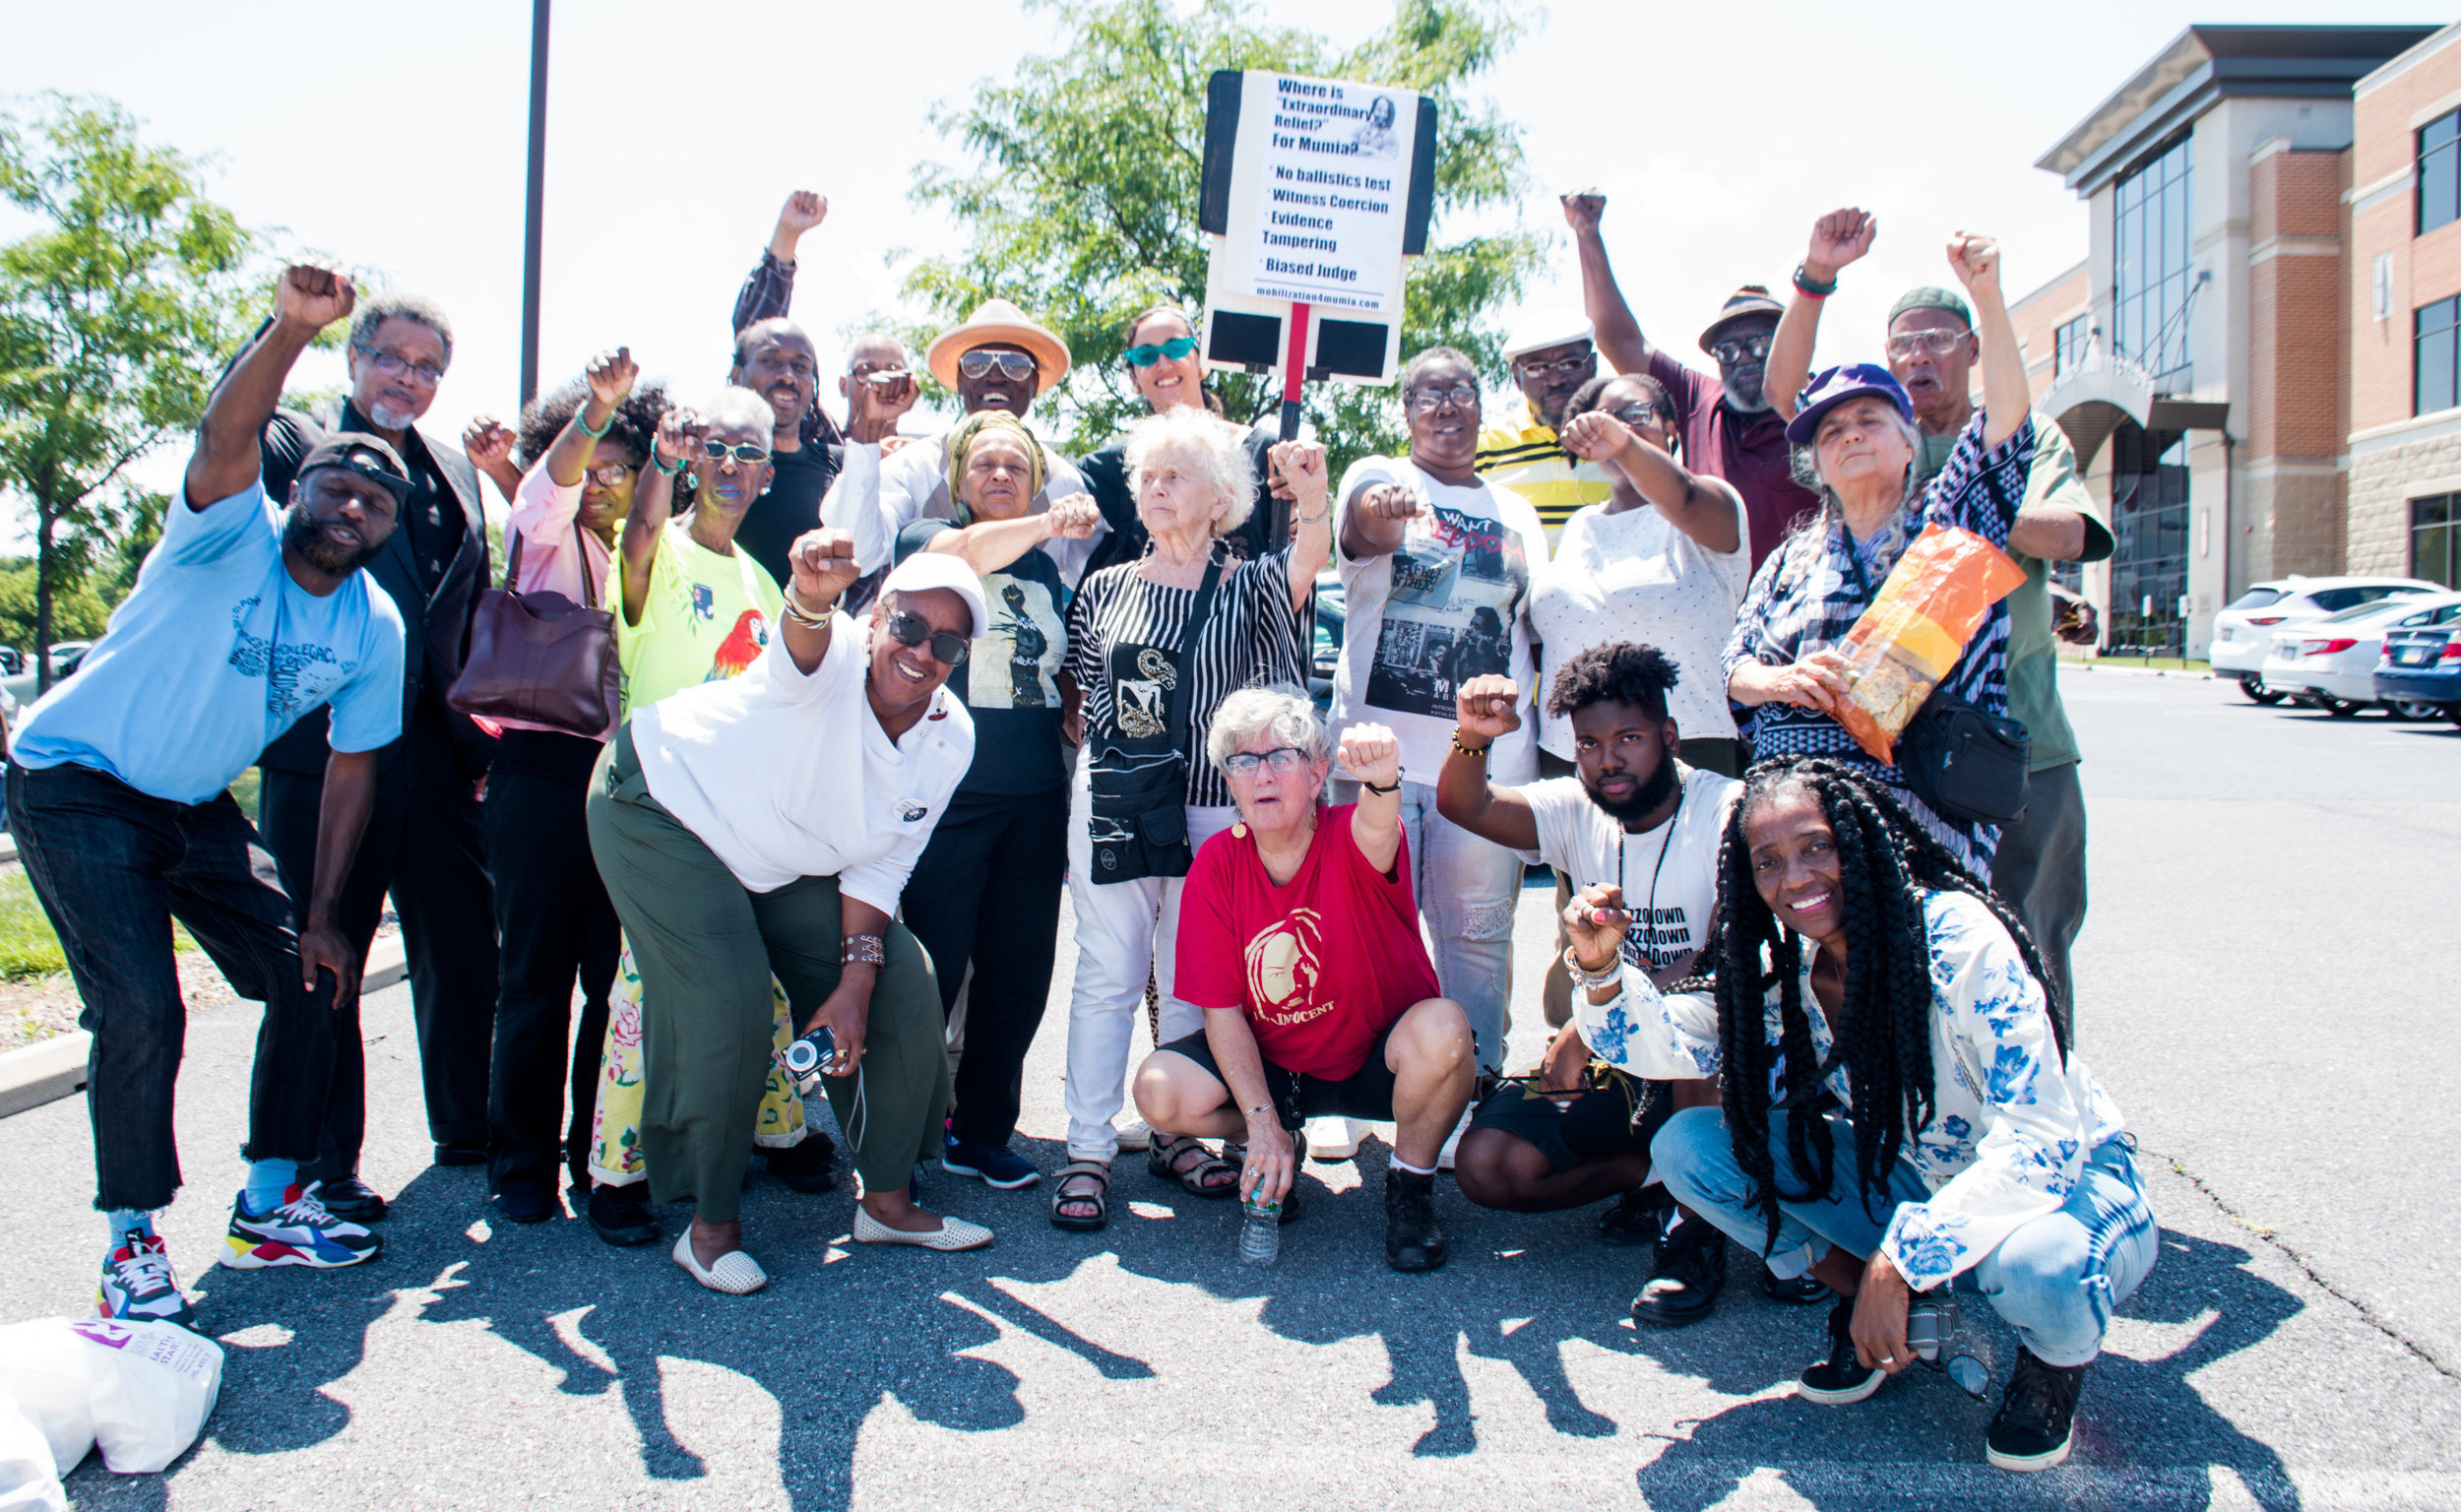 Mumia supporters gather together on July 24, outside PA Department of Corrections HQ in Mechanicsburg, PA. Photo credit: Joe Piette